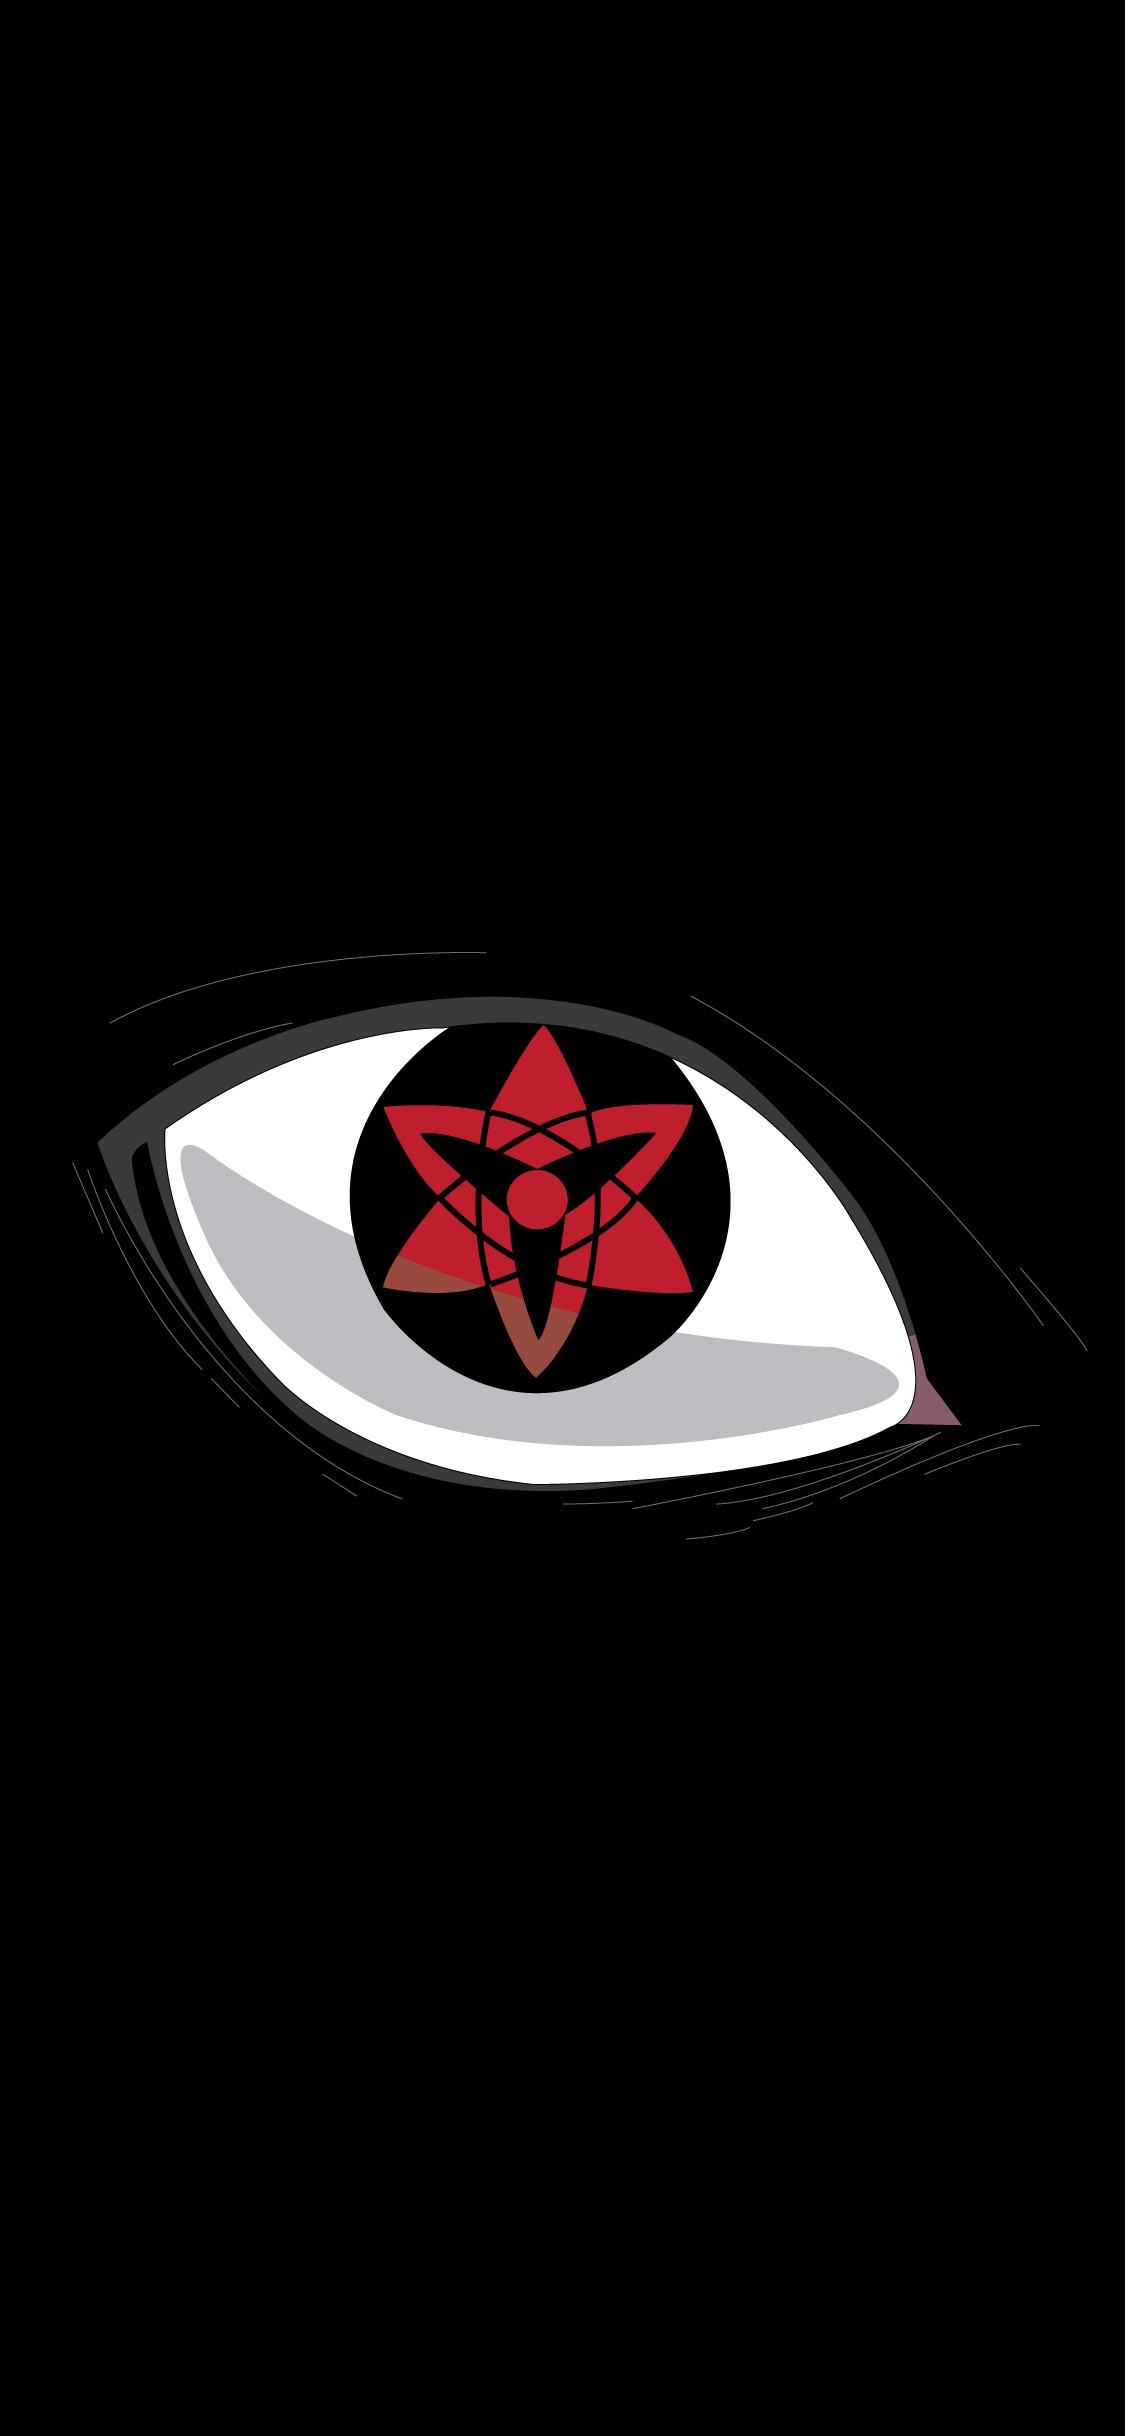 Sharingan Eye Wallpaper 3